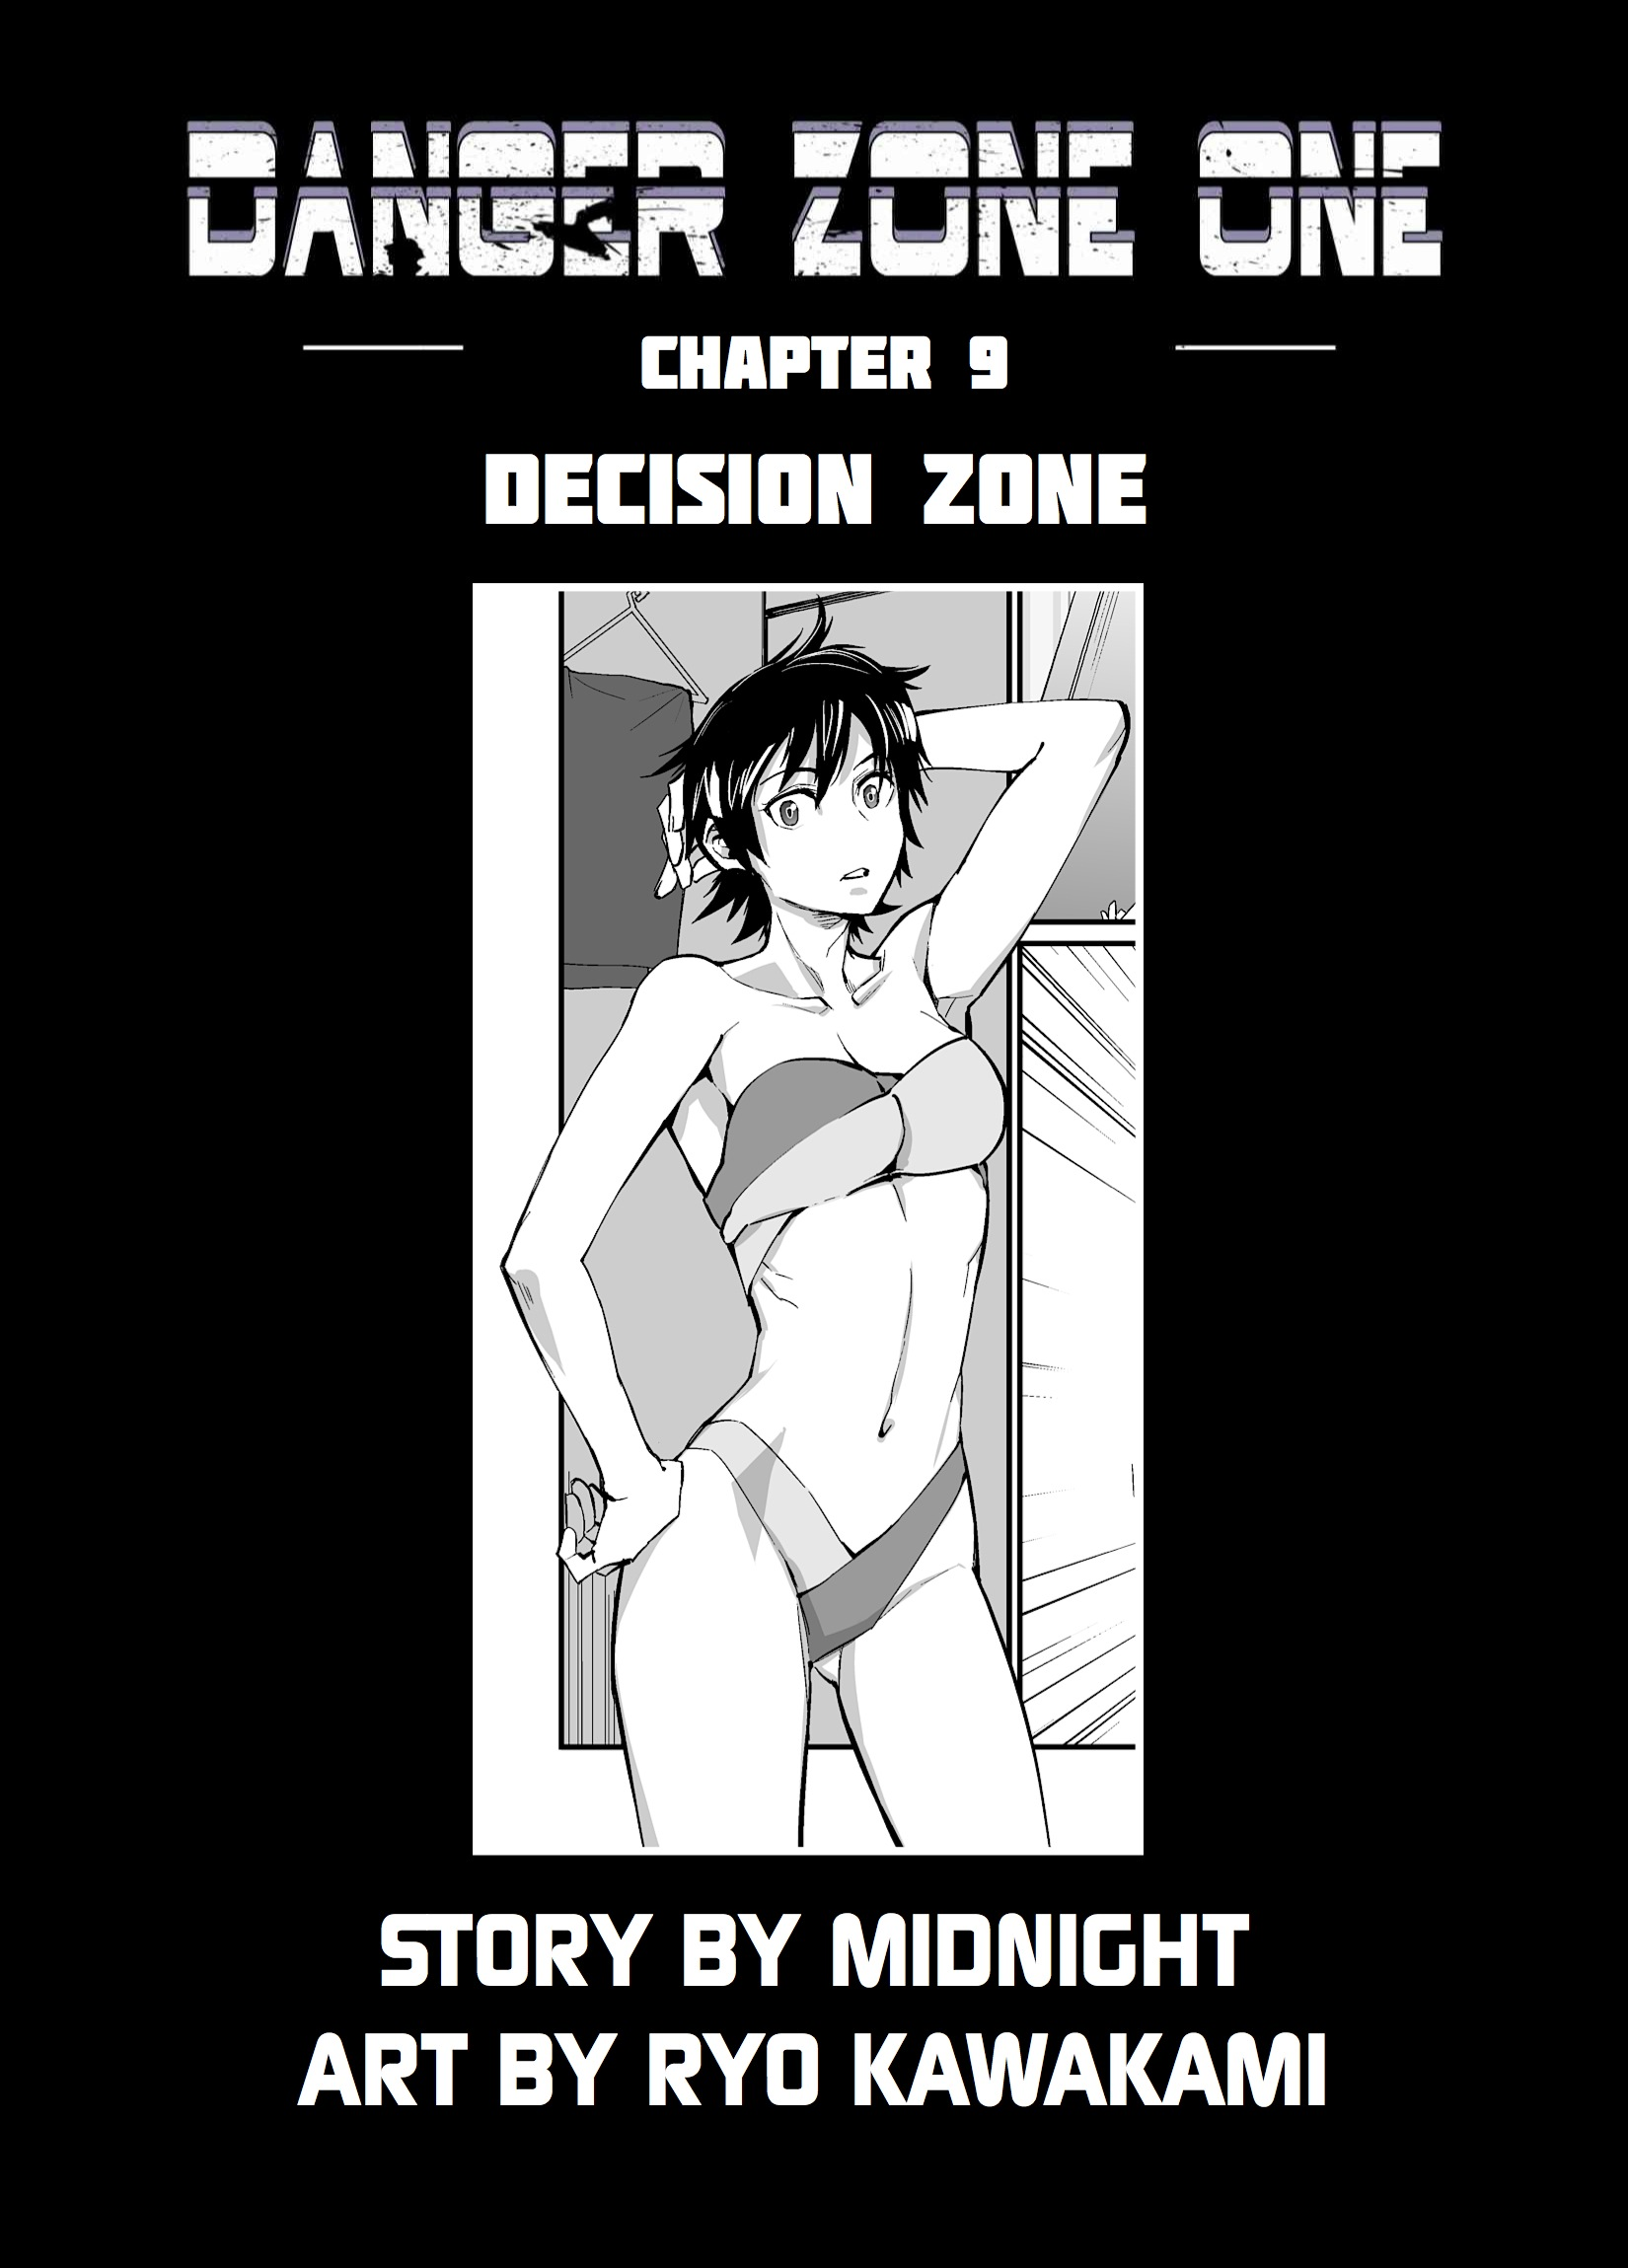 Chapter 9: Decision Zone